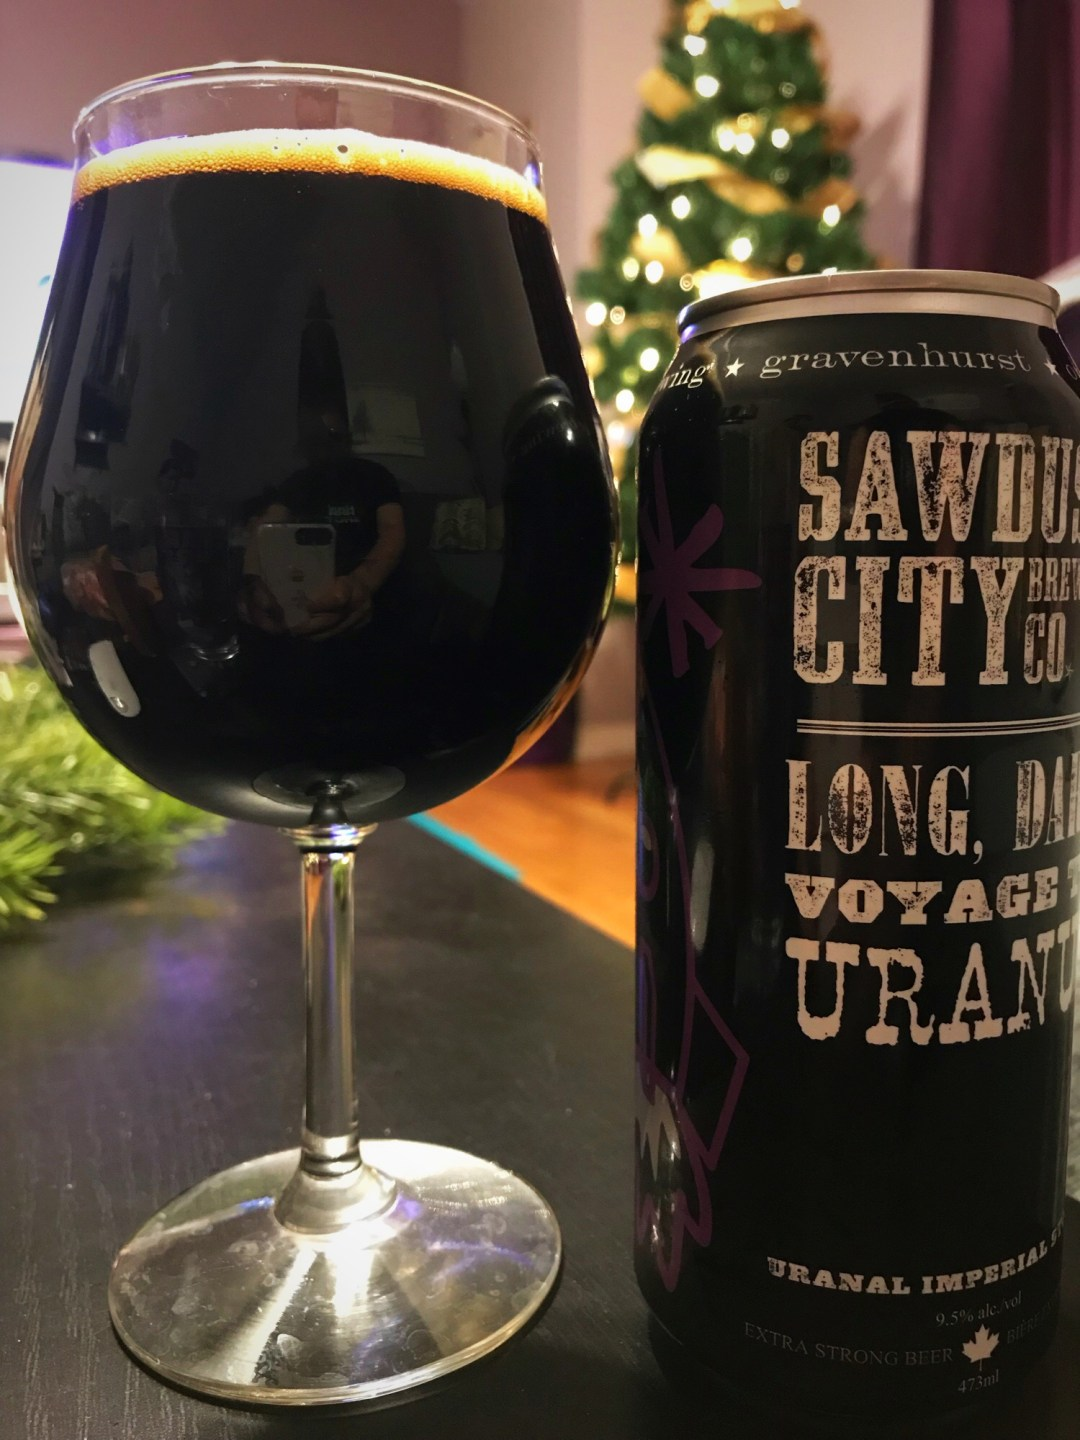 In keeping with the standard for Imperial Stouts, this brew clocks in at a hearty 9.5% ABV. With all of the additional notes of flavour, the alcohol content is dangerously well-hidden.